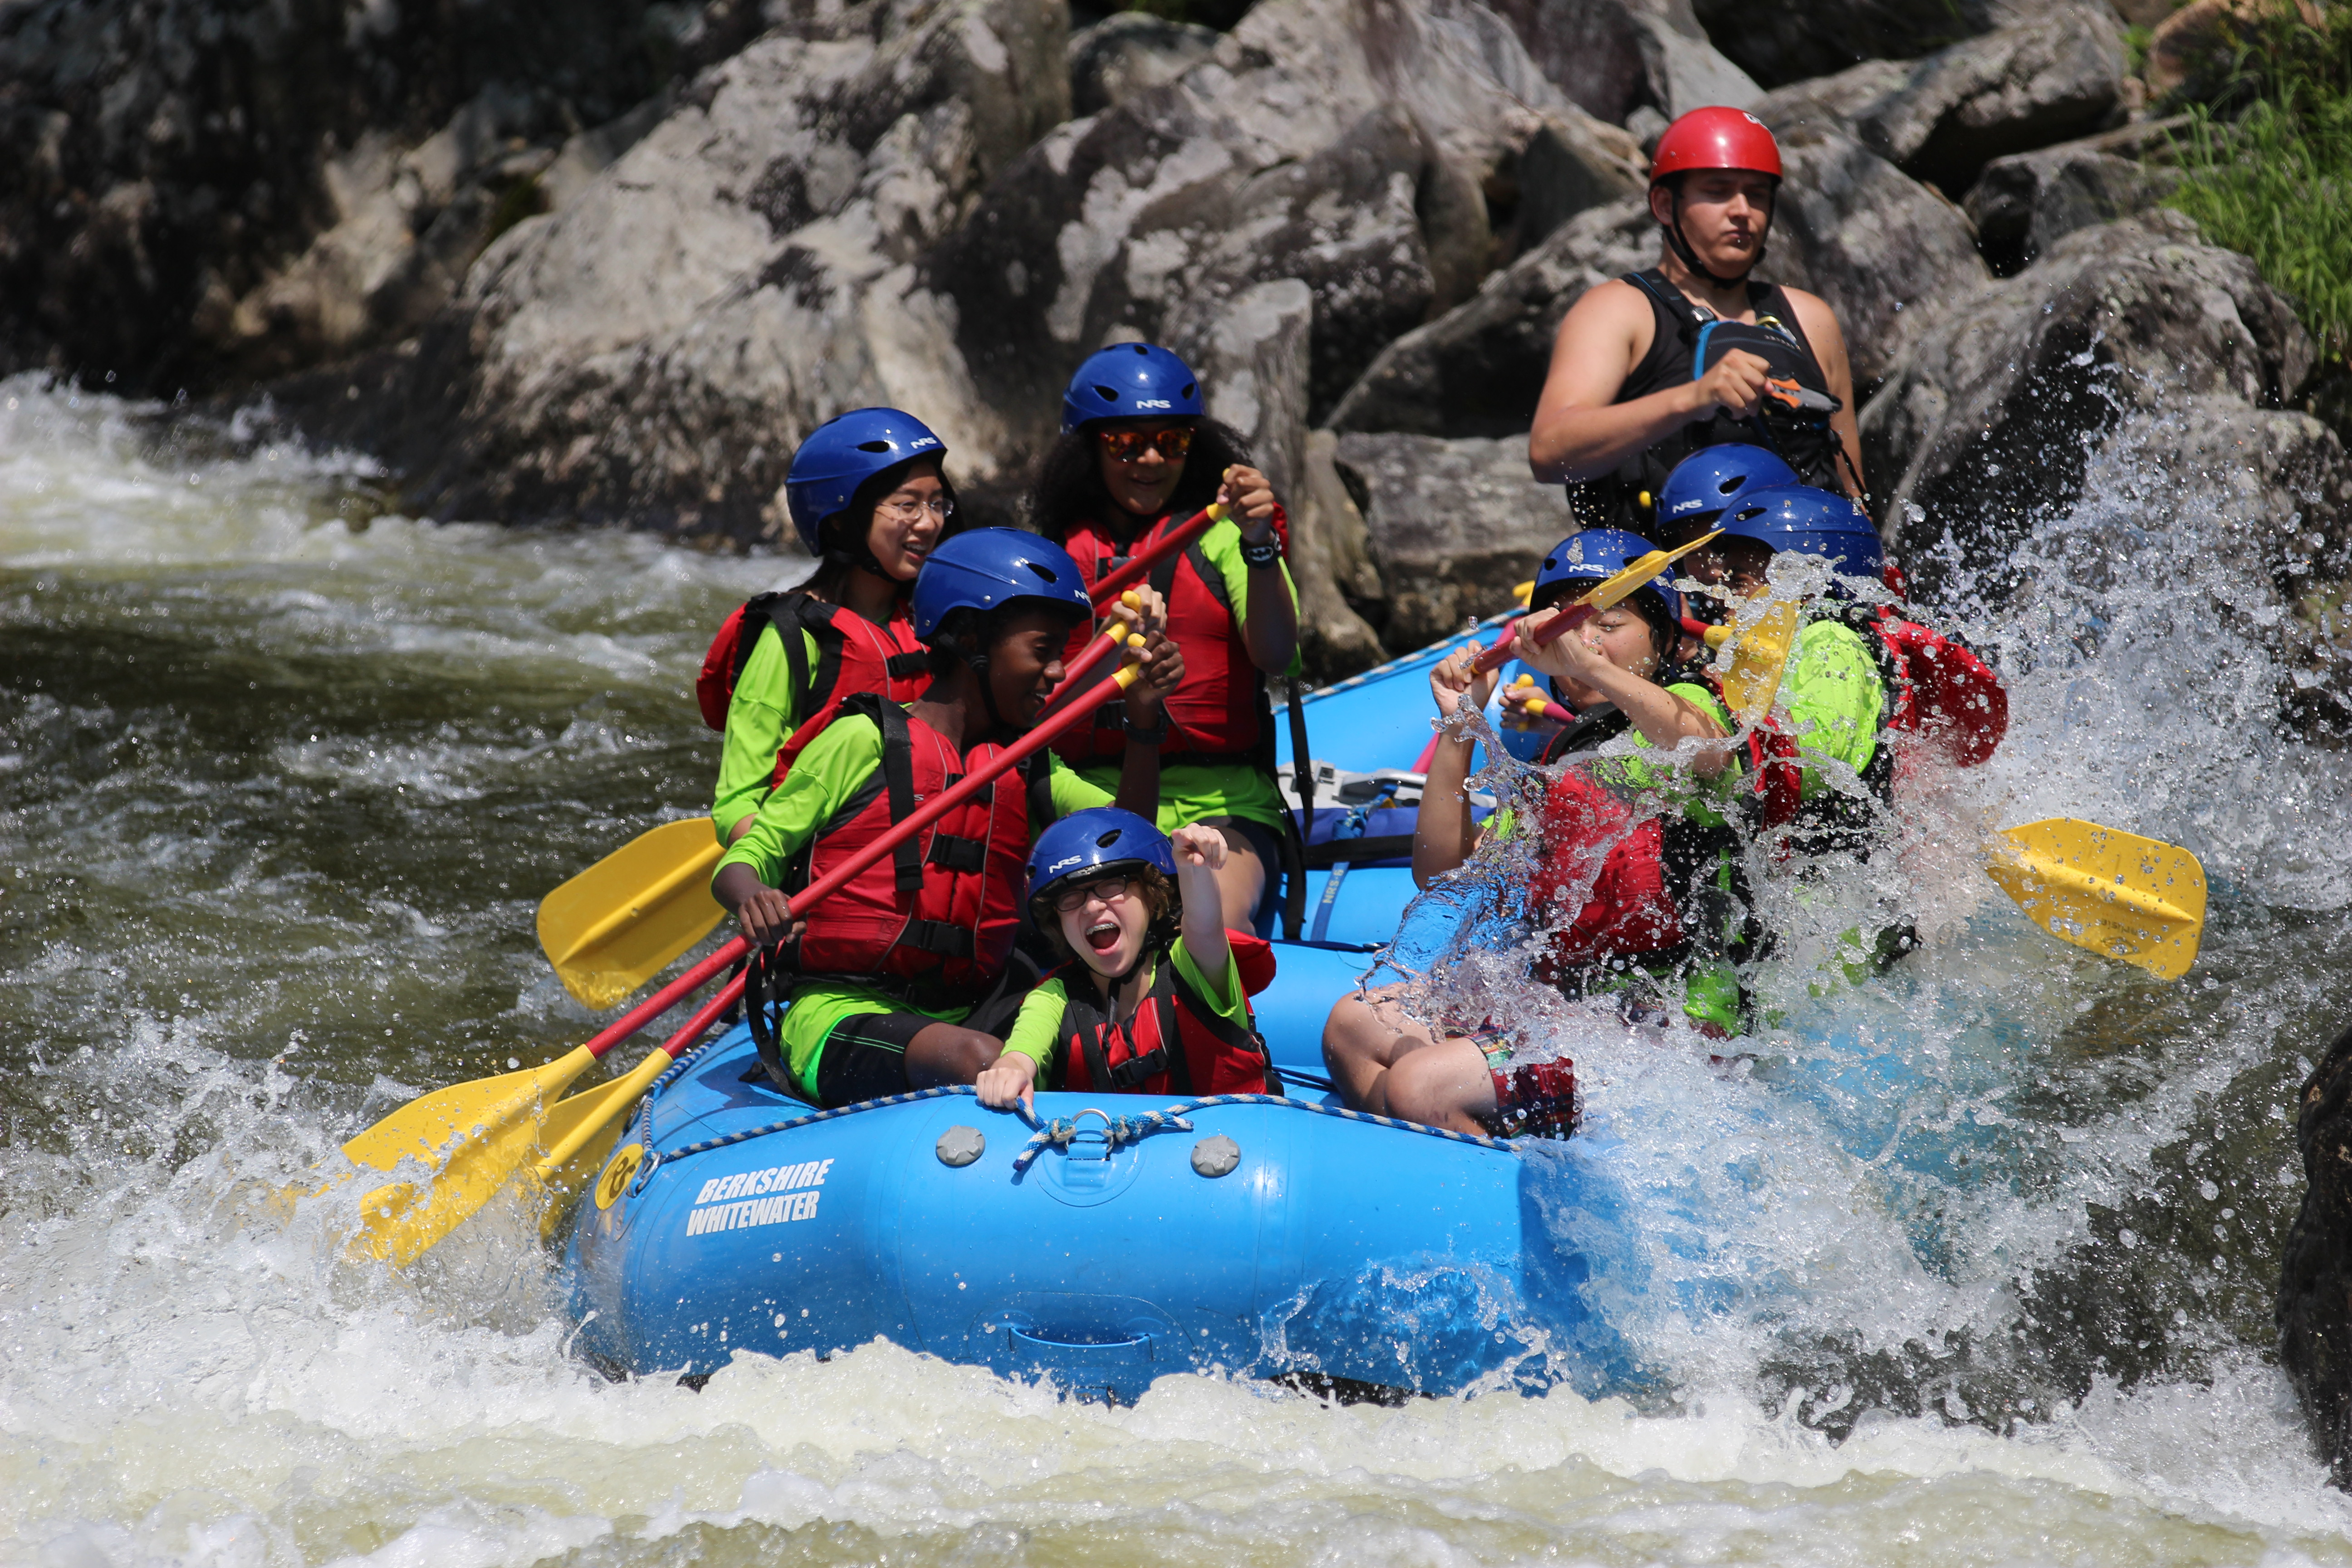 Our middle school students had some great summer fun today!